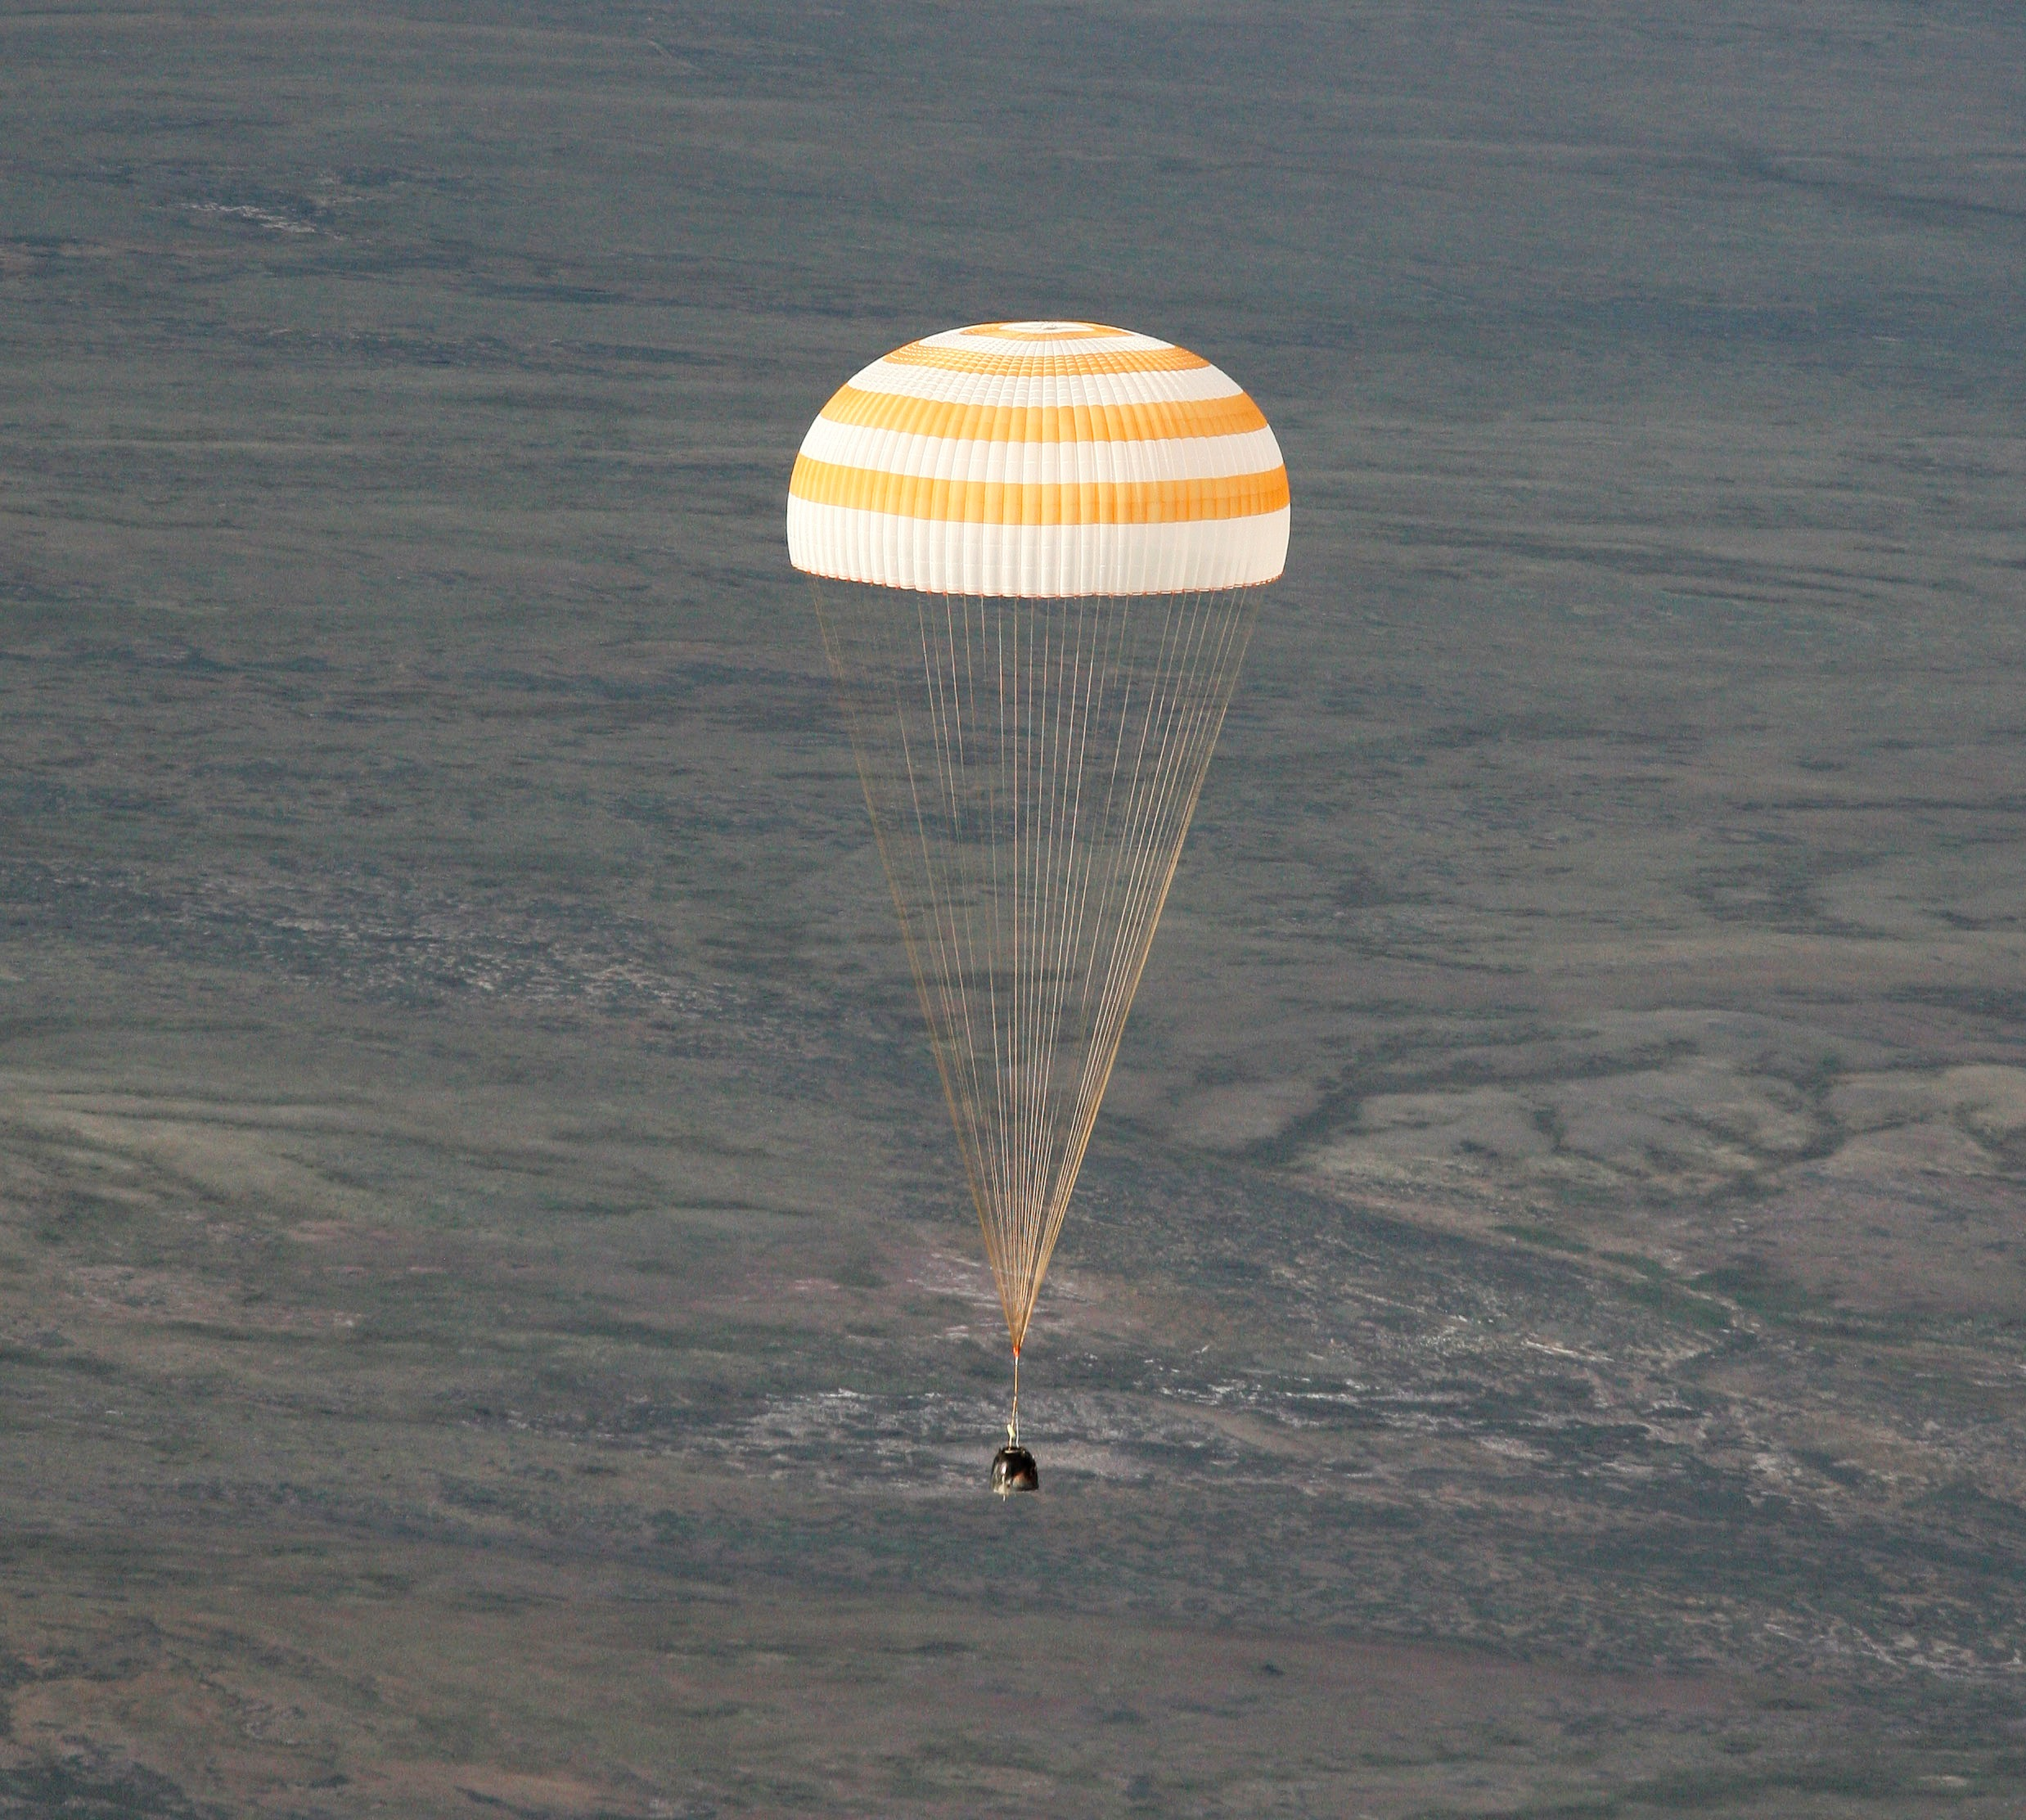 Image result for soyuz tma-9 landing